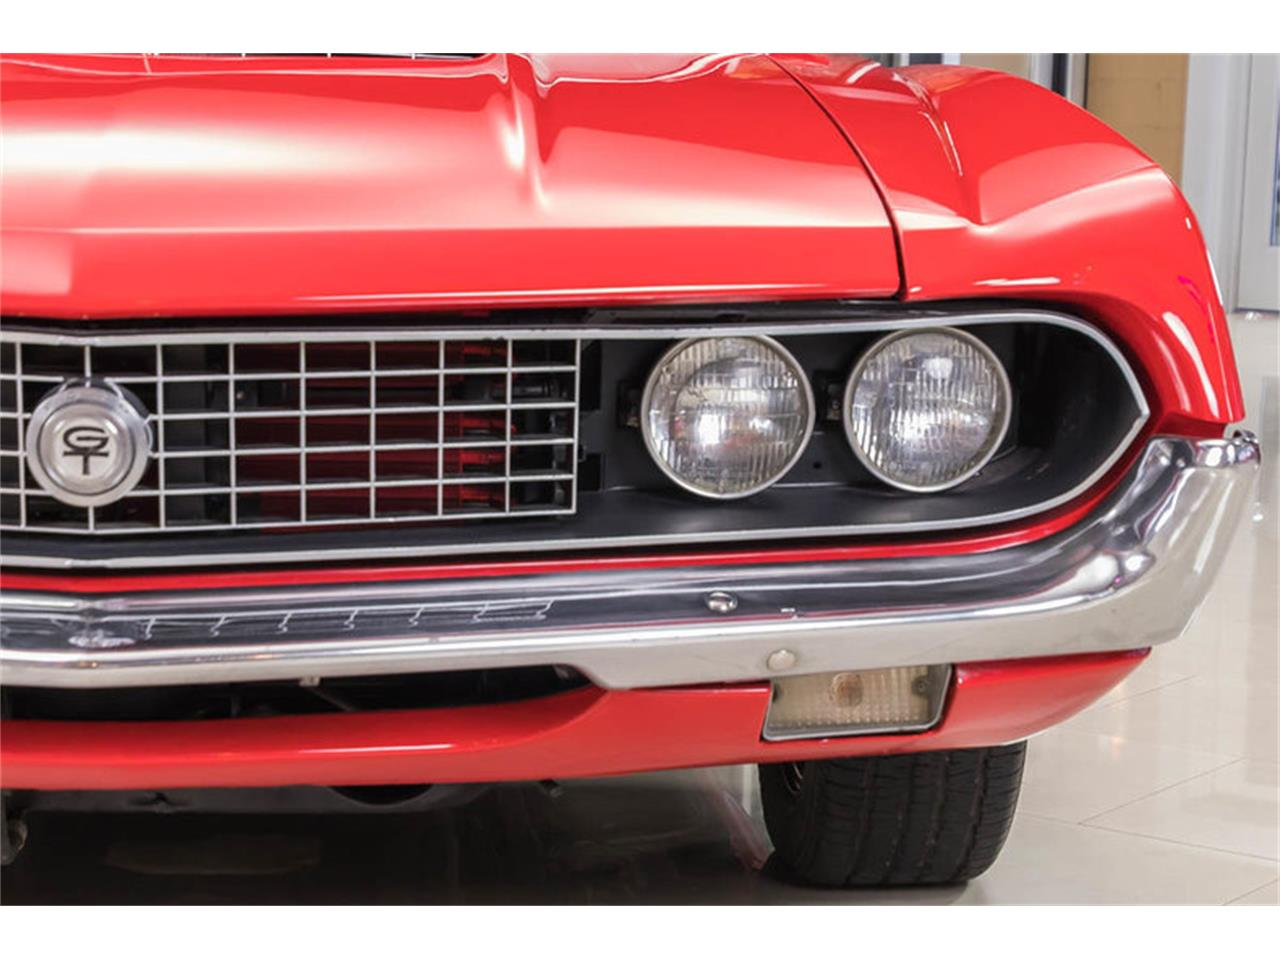 Large Picture of '70 Ford Torino located in Michigan - $42,900.00 Offered by Vanguard Motor Sales - FWIC